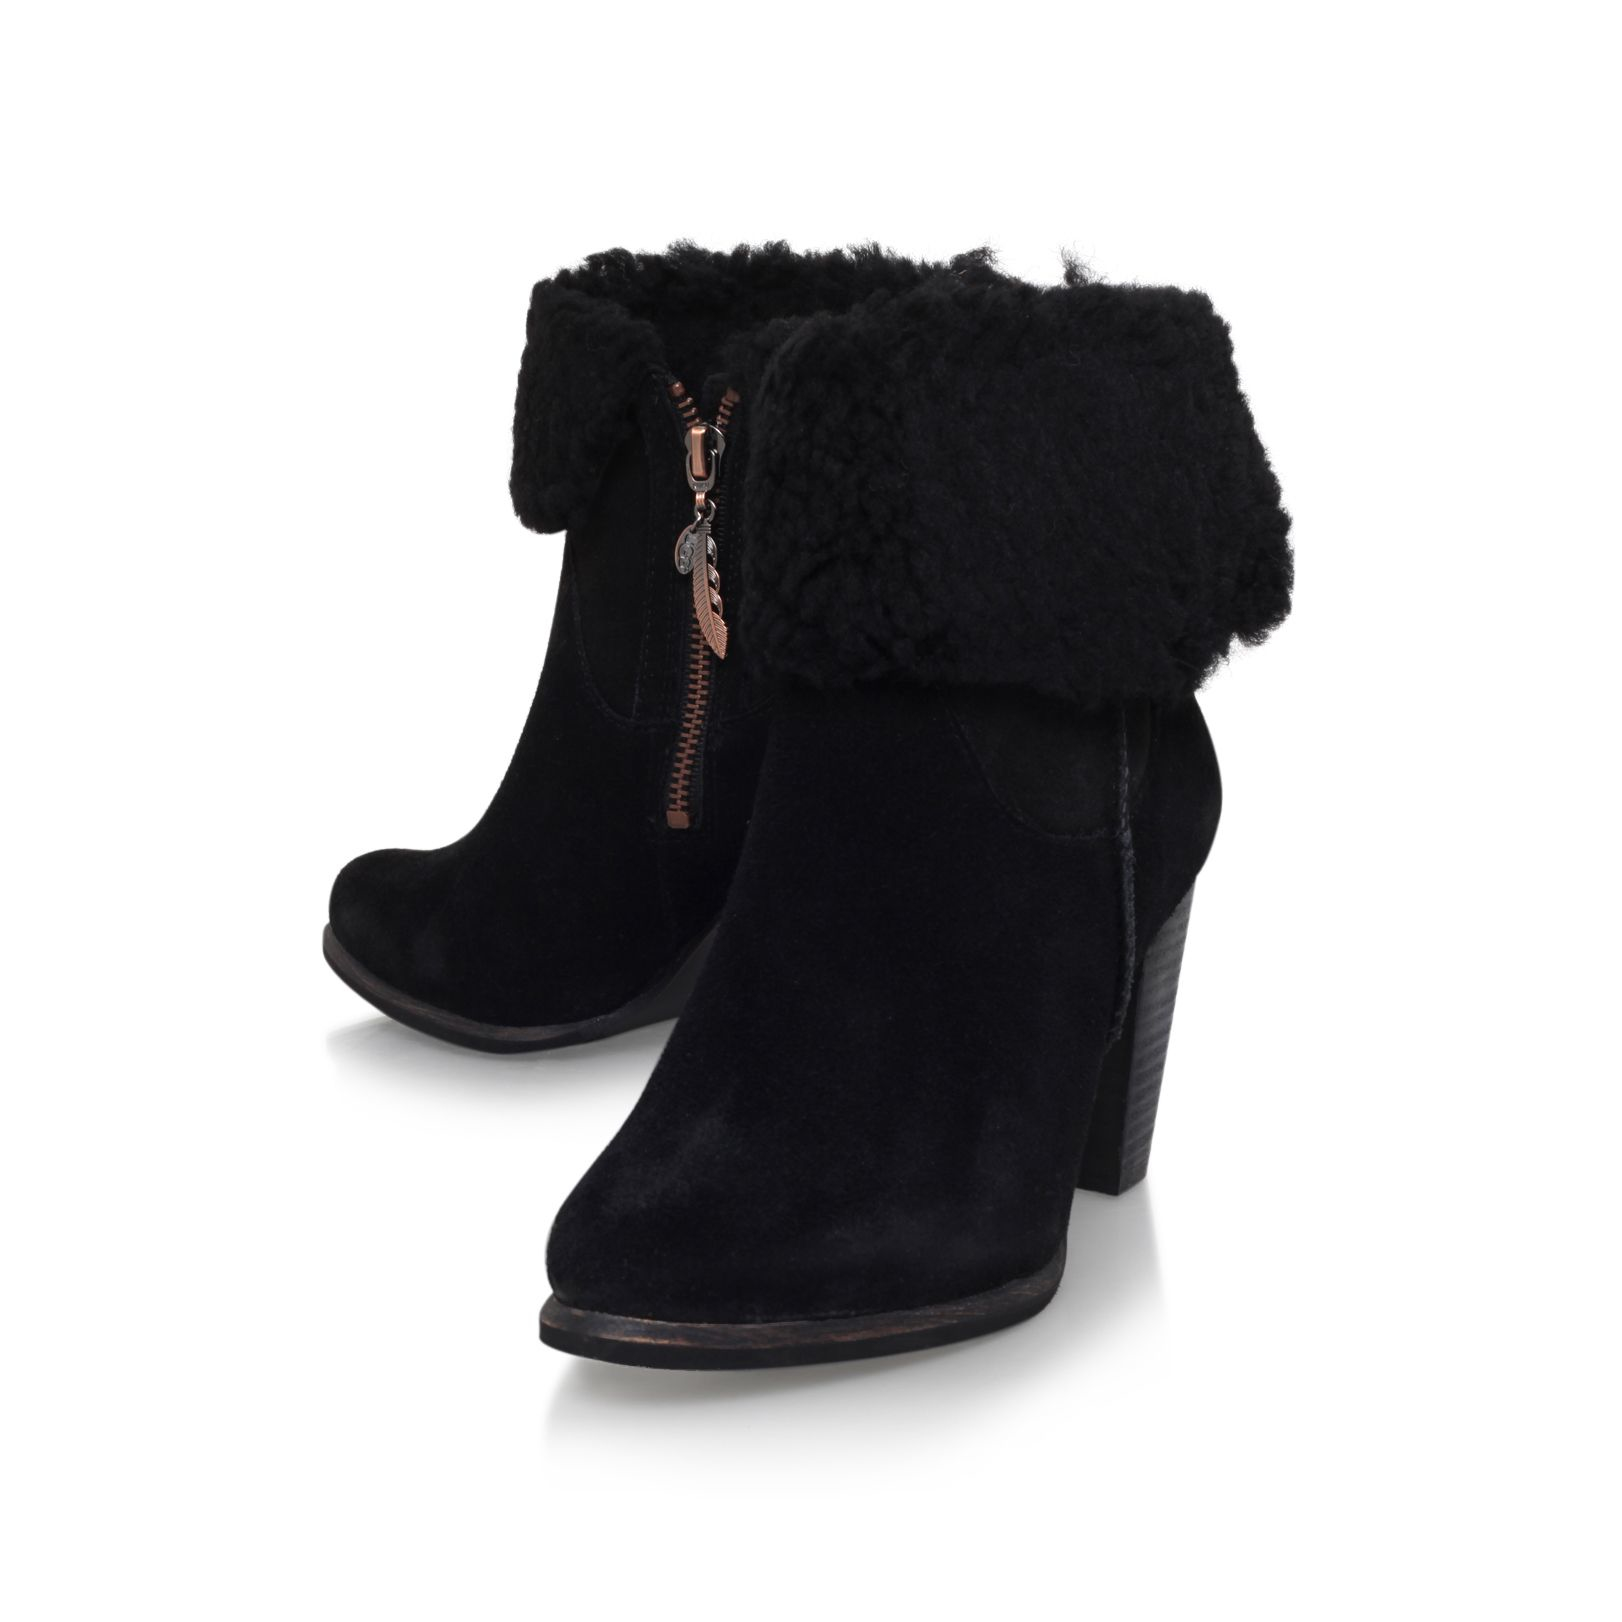 817db3e0999 High Ugg Boots - Ivoiregion